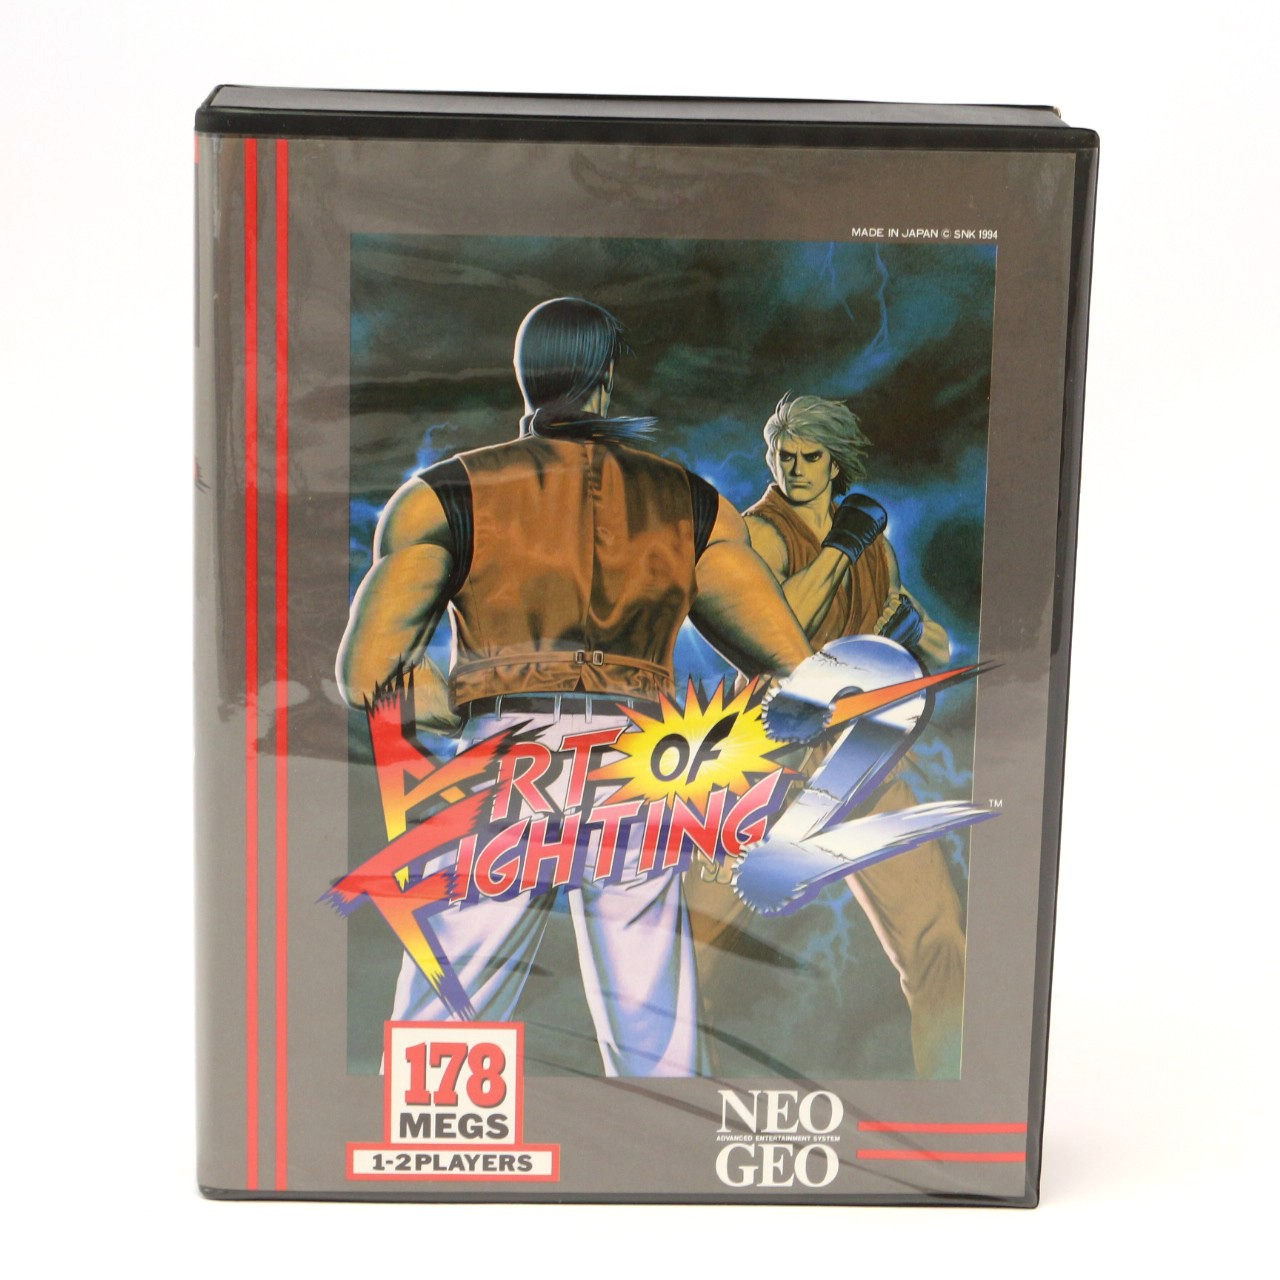 Neo Geo AES - Art of Fighting 2 / 178 Megs